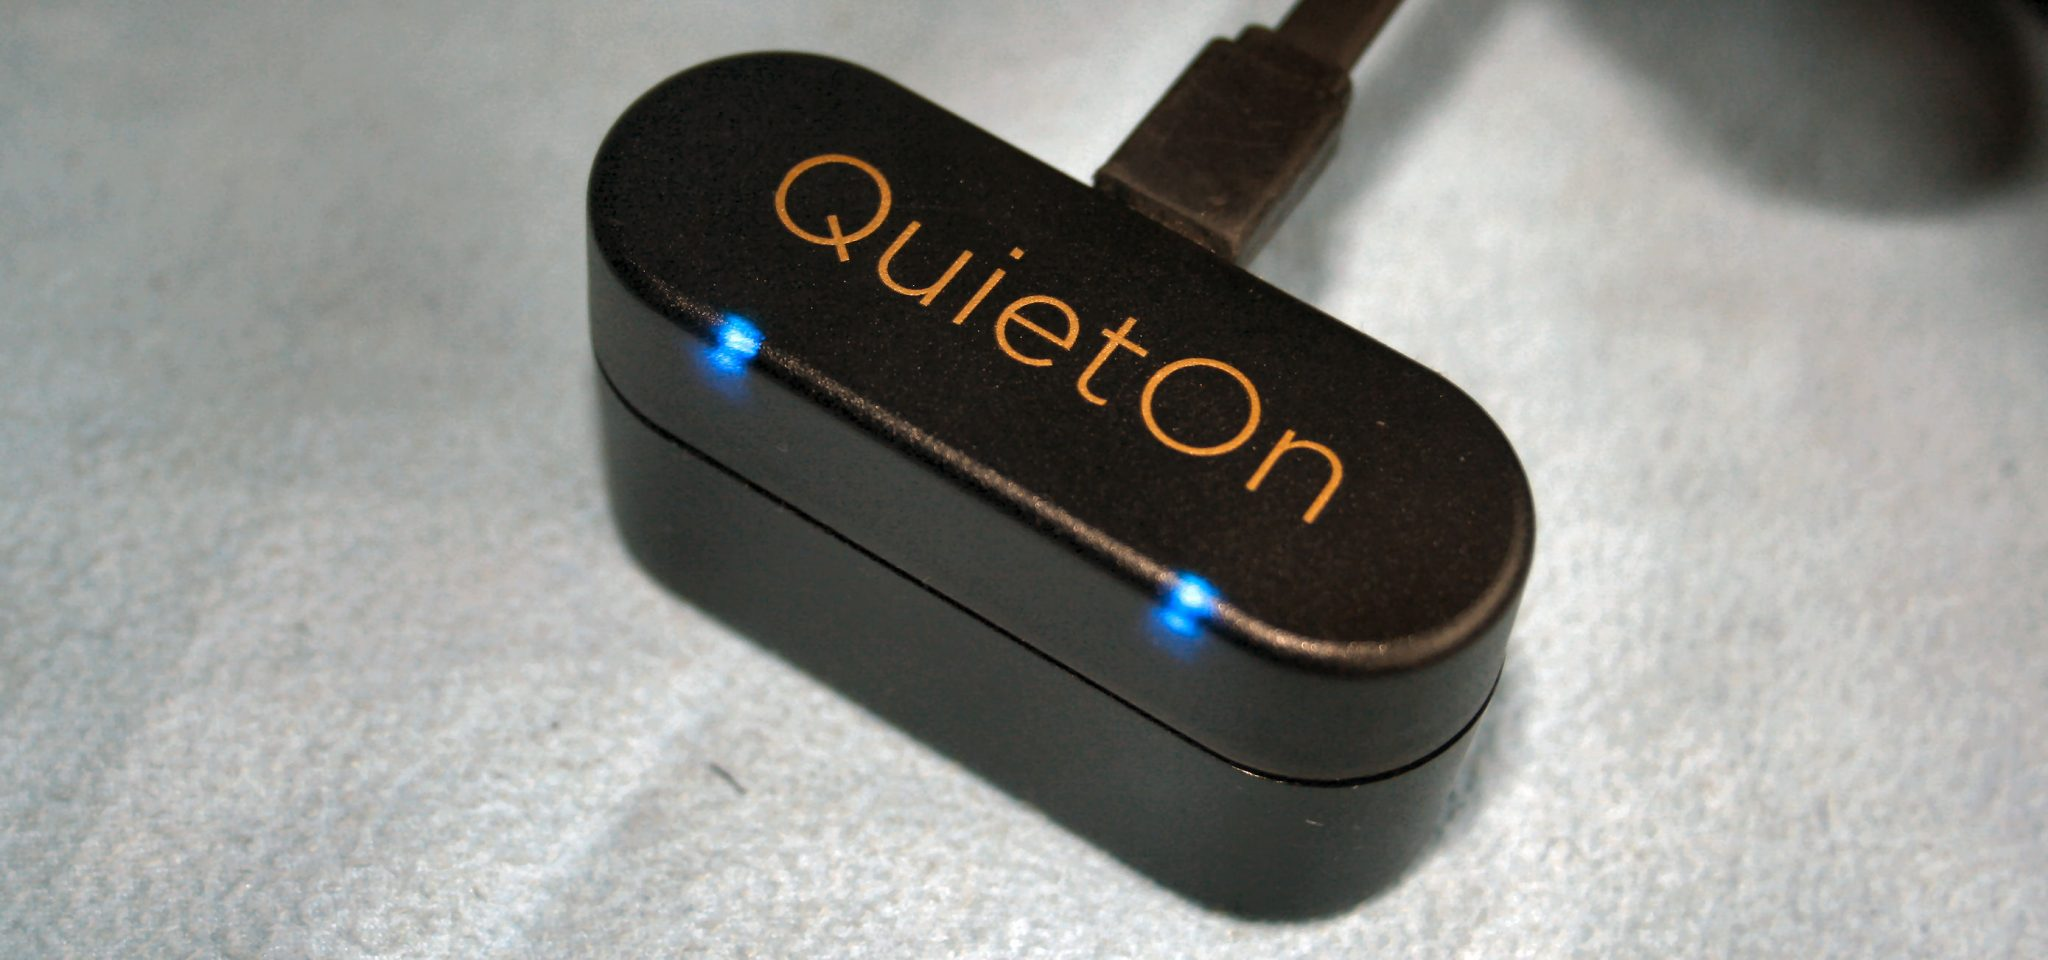 Quieton Sleep Review